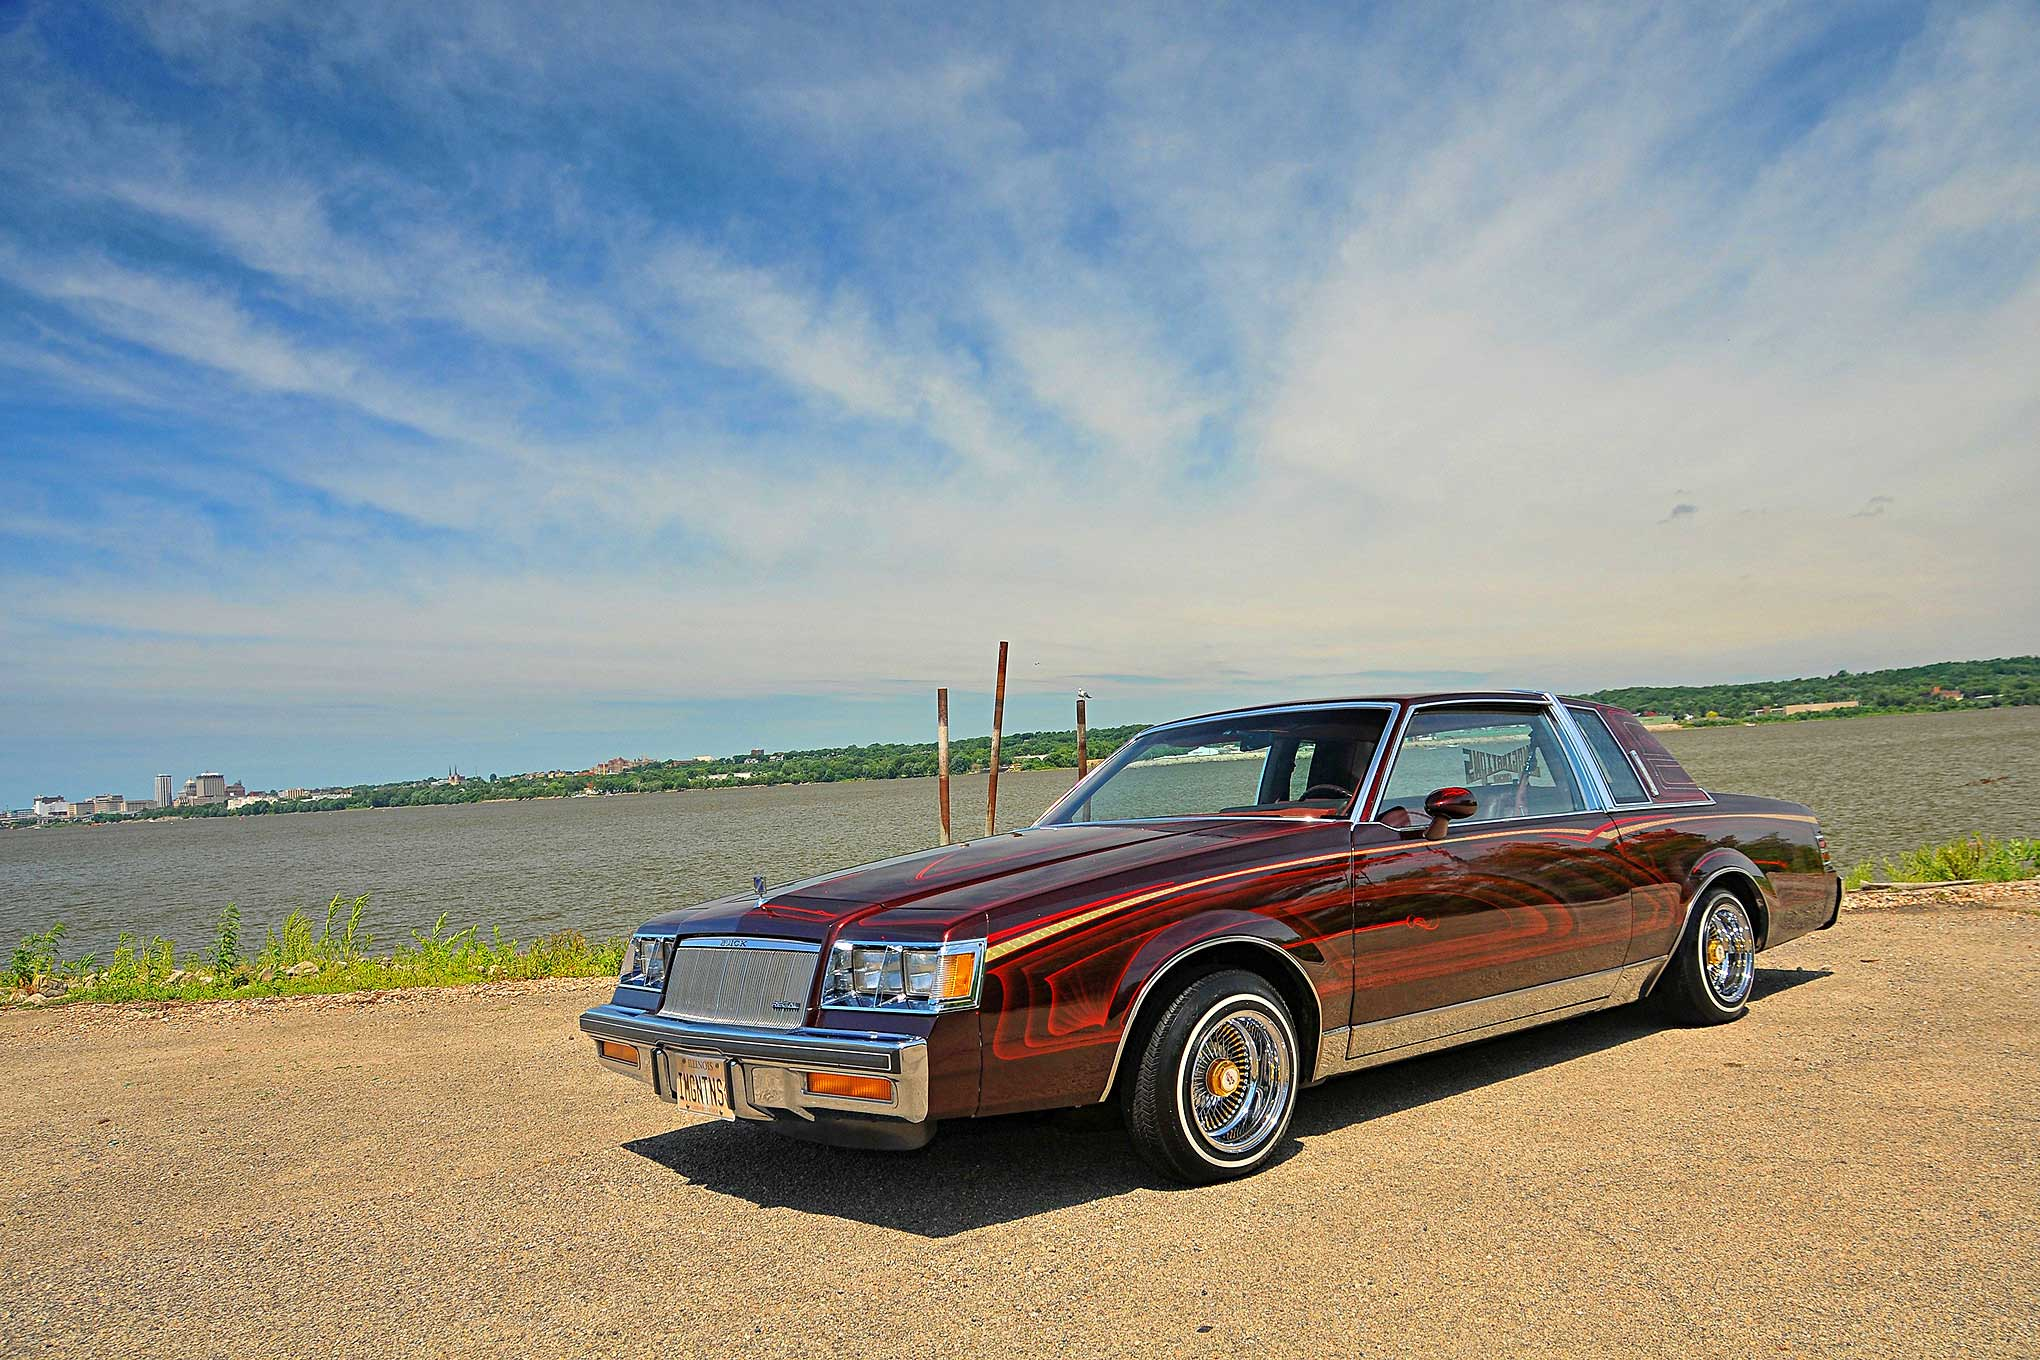 1985 Buick Regal Limited - Phase One